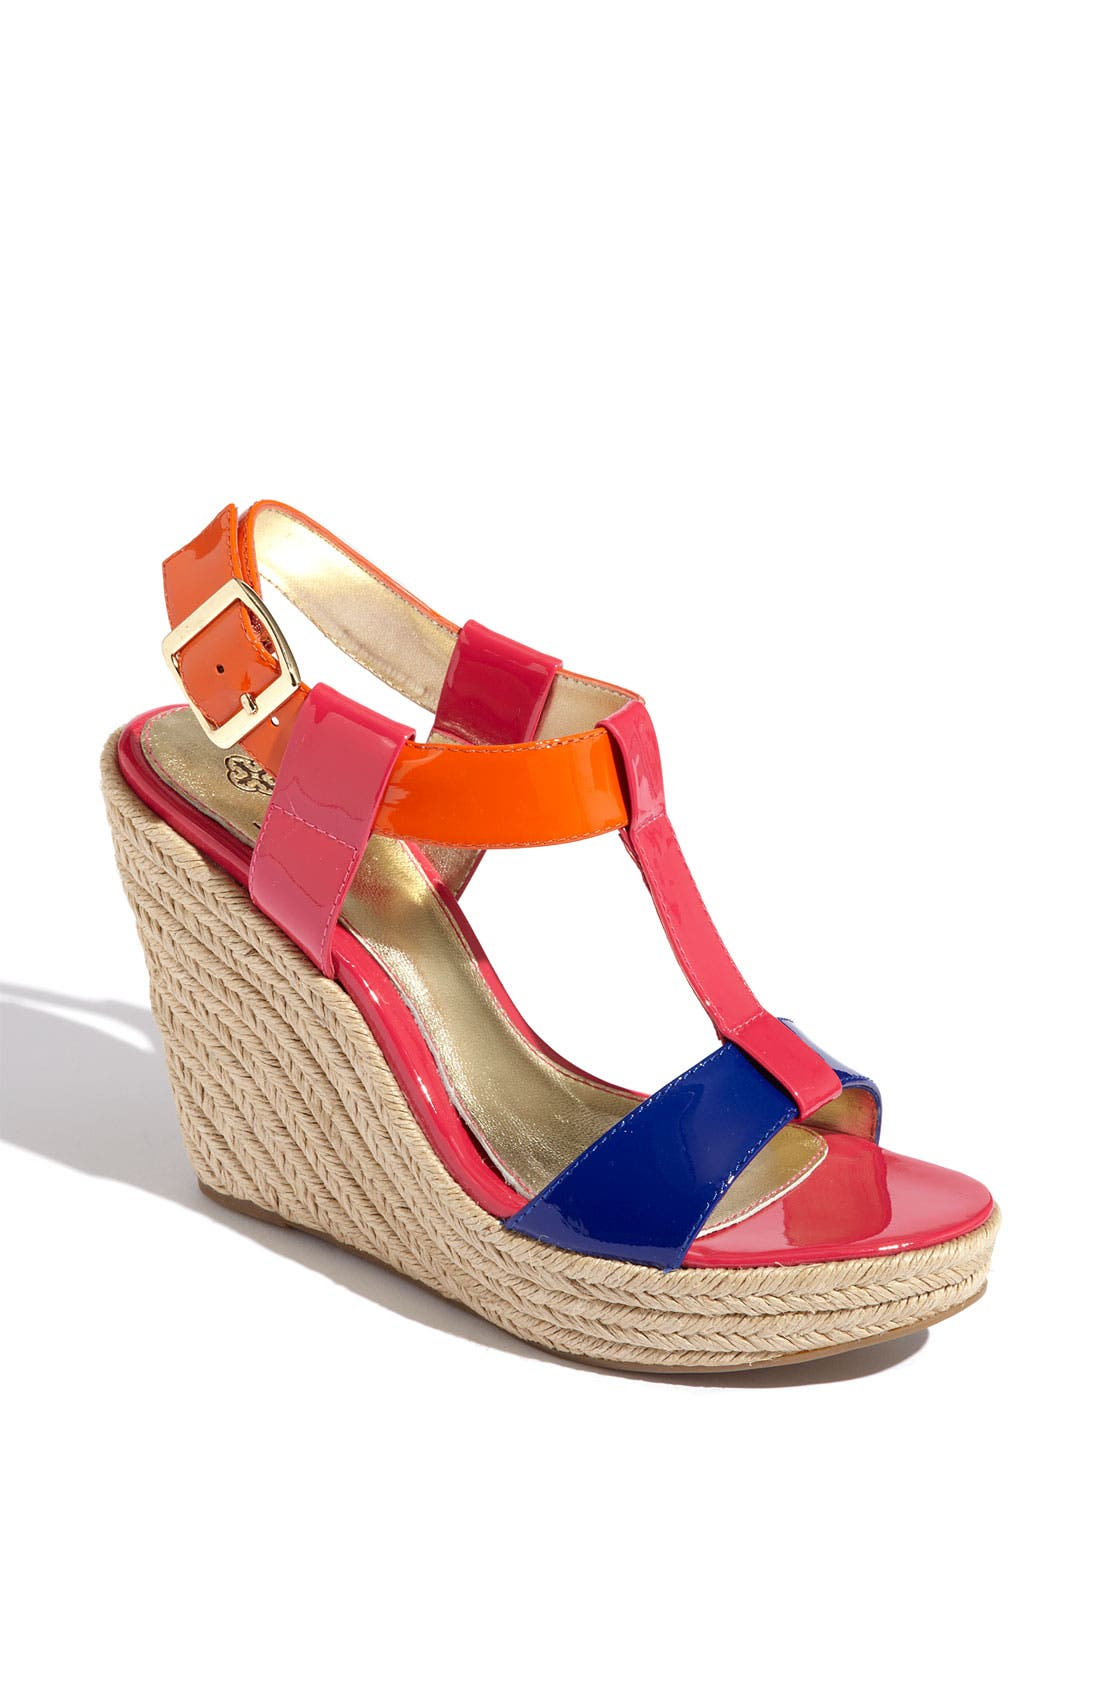 Alternate Image 1 Selected - Isolá 'Olencia' Wedge Sandal